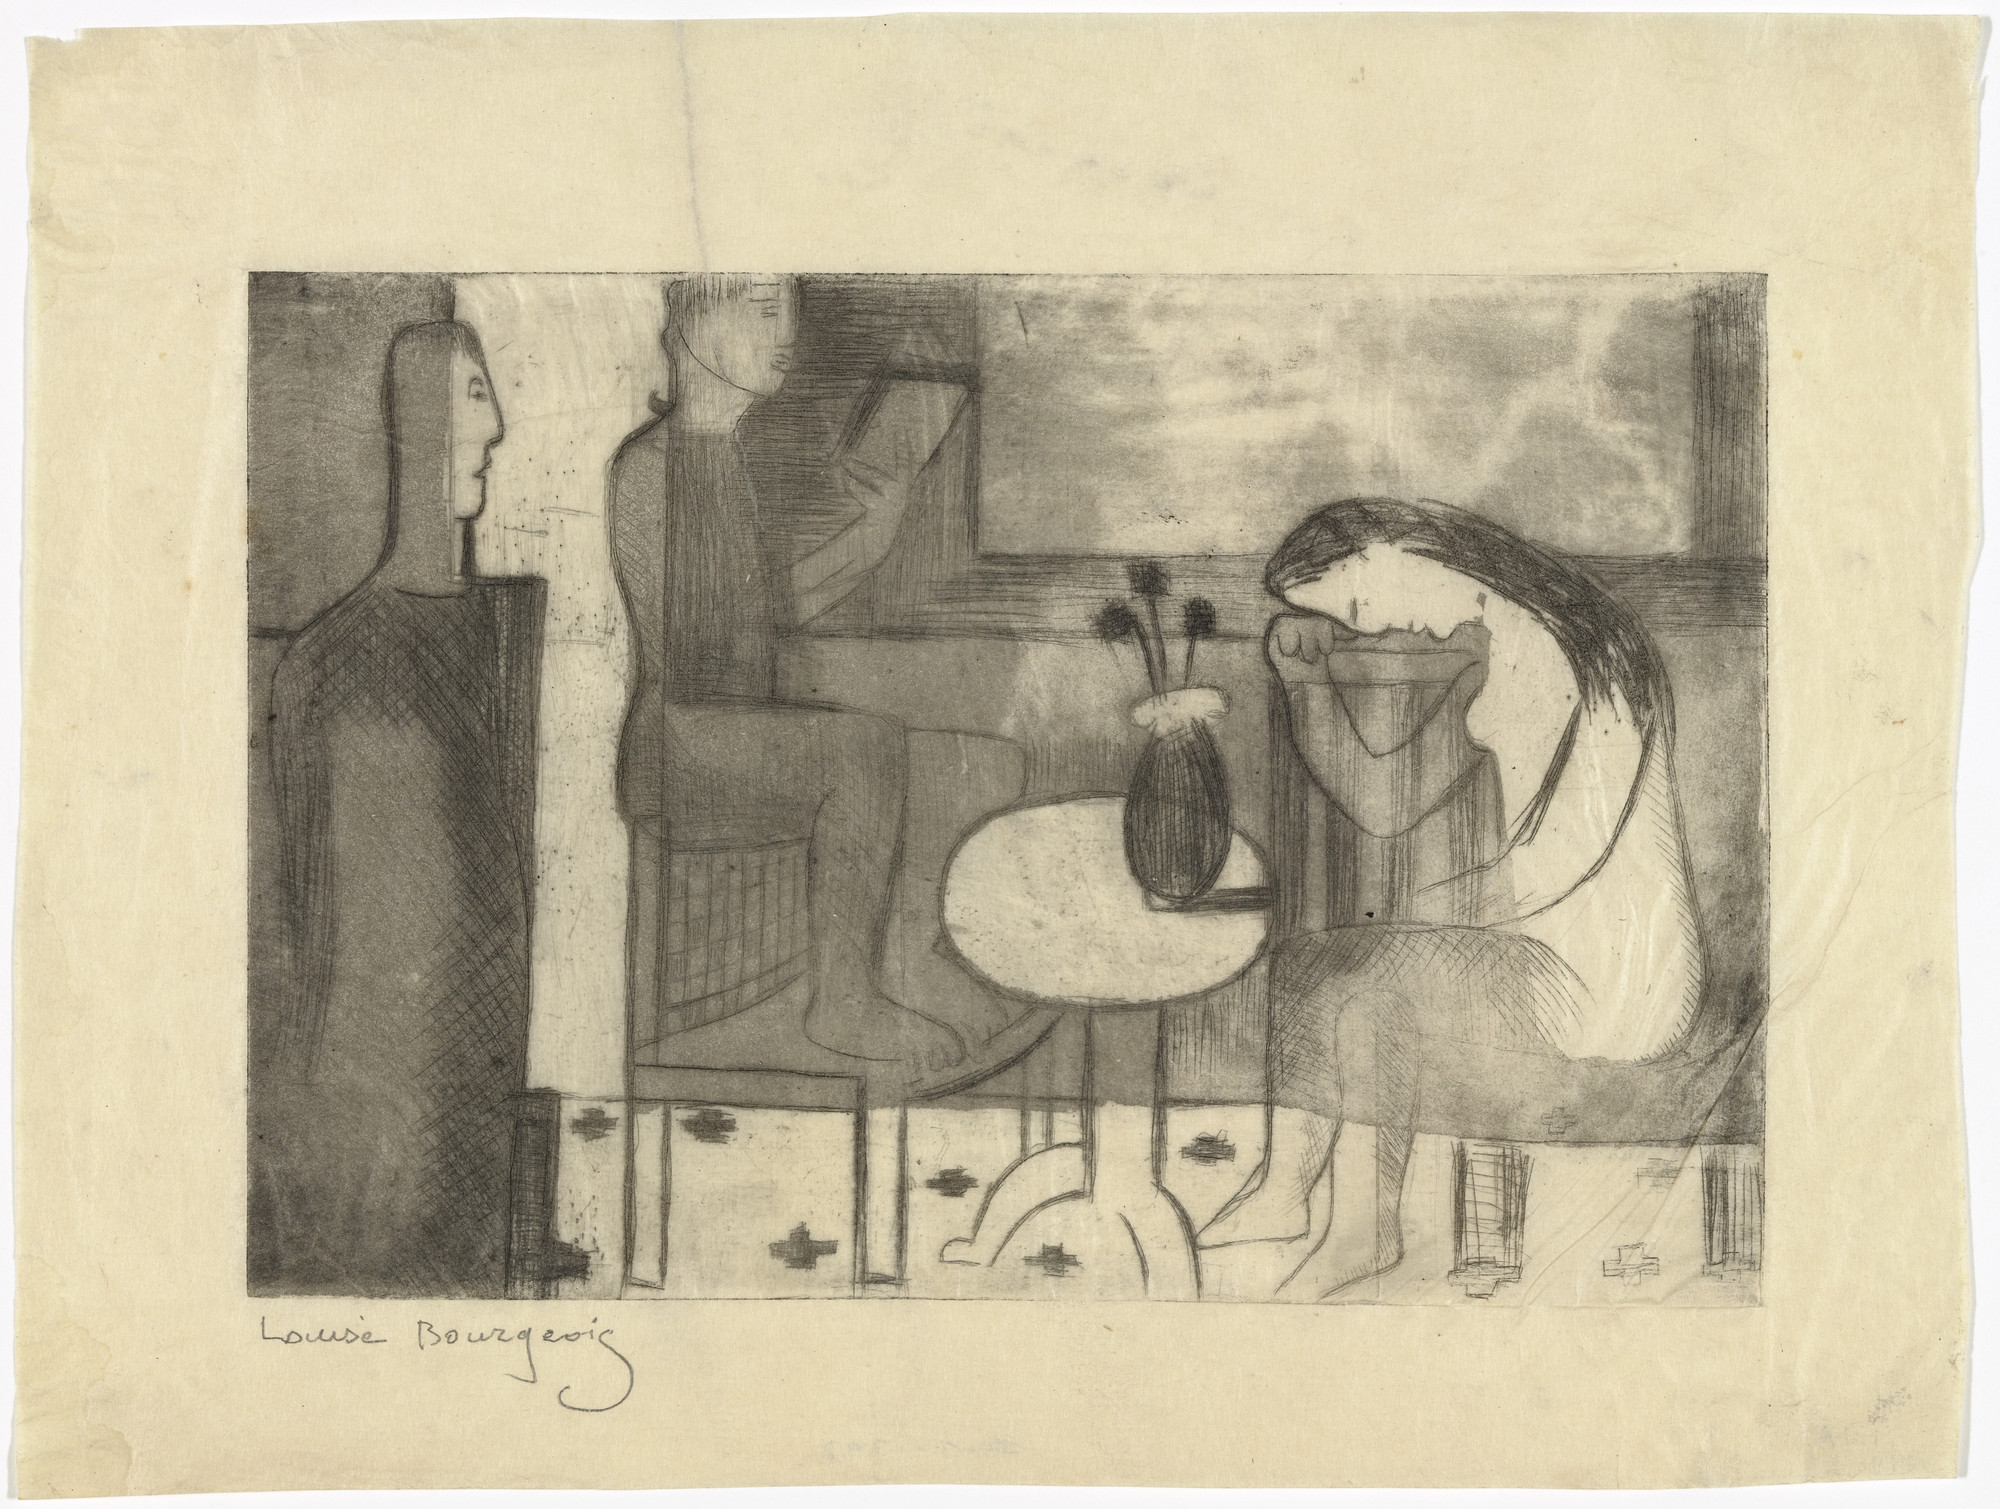 Louise Bourgeois. Youth. 1941-1944